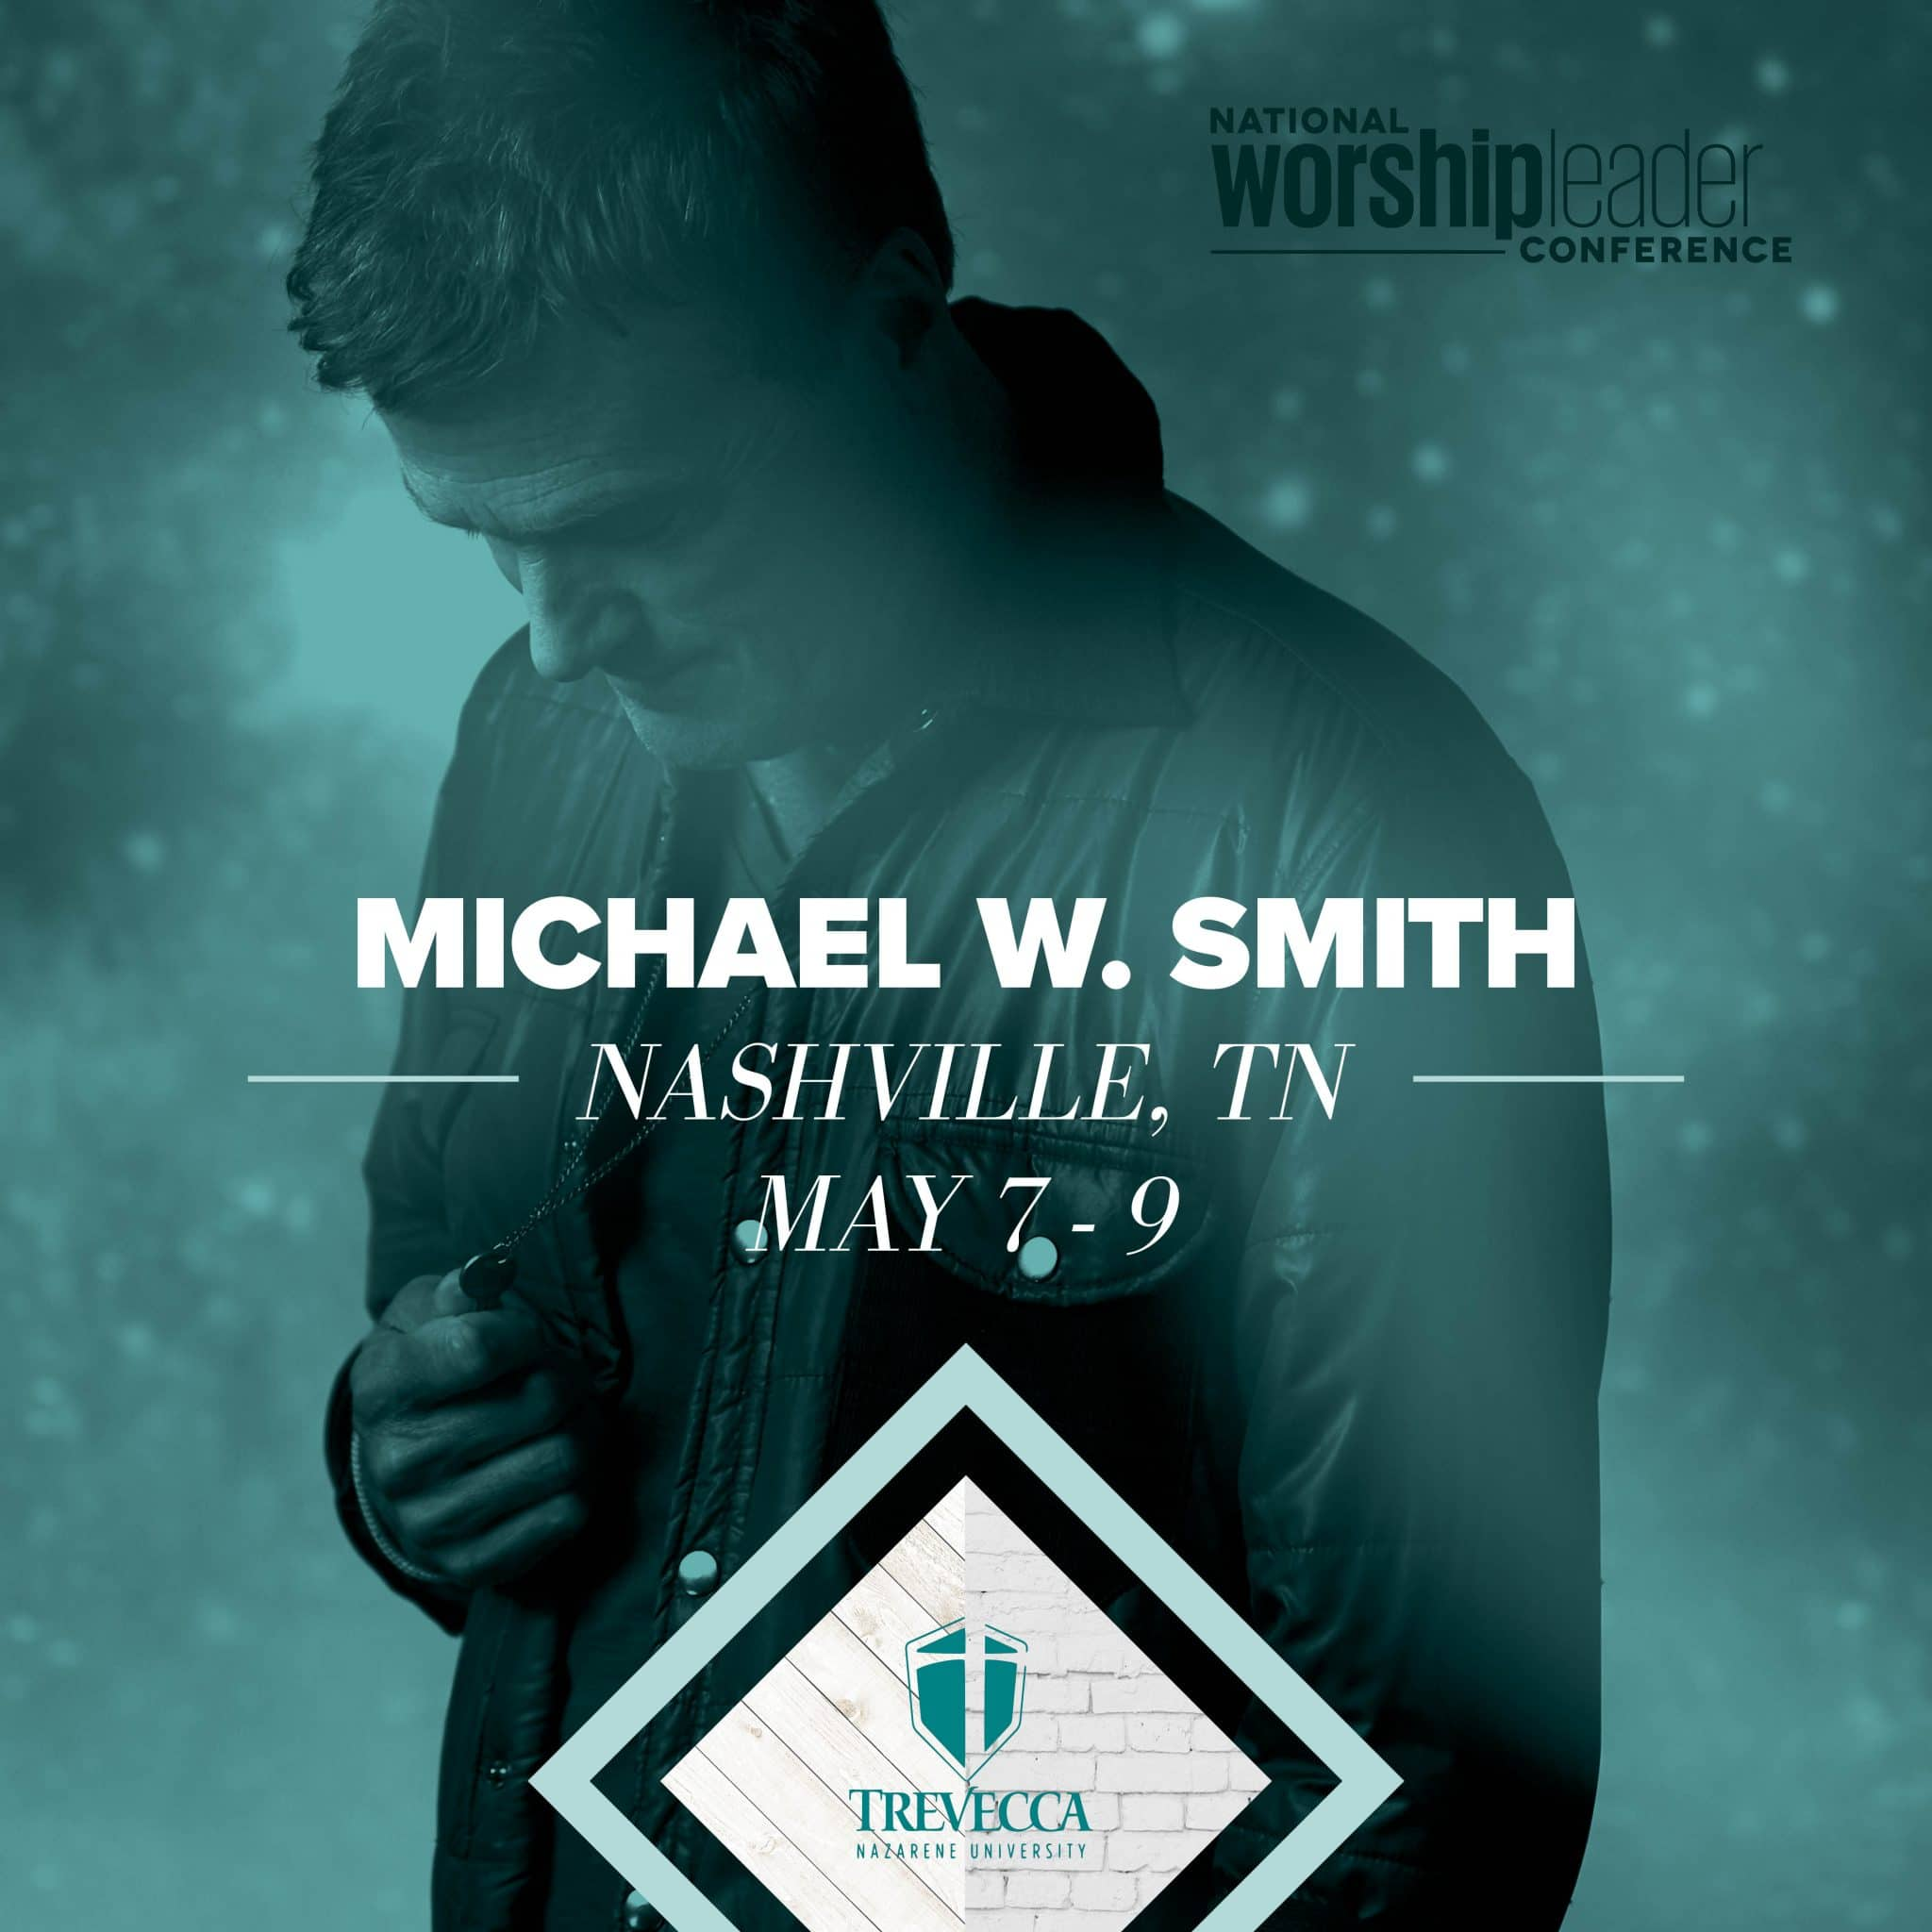 Michael W Smith at NWLC